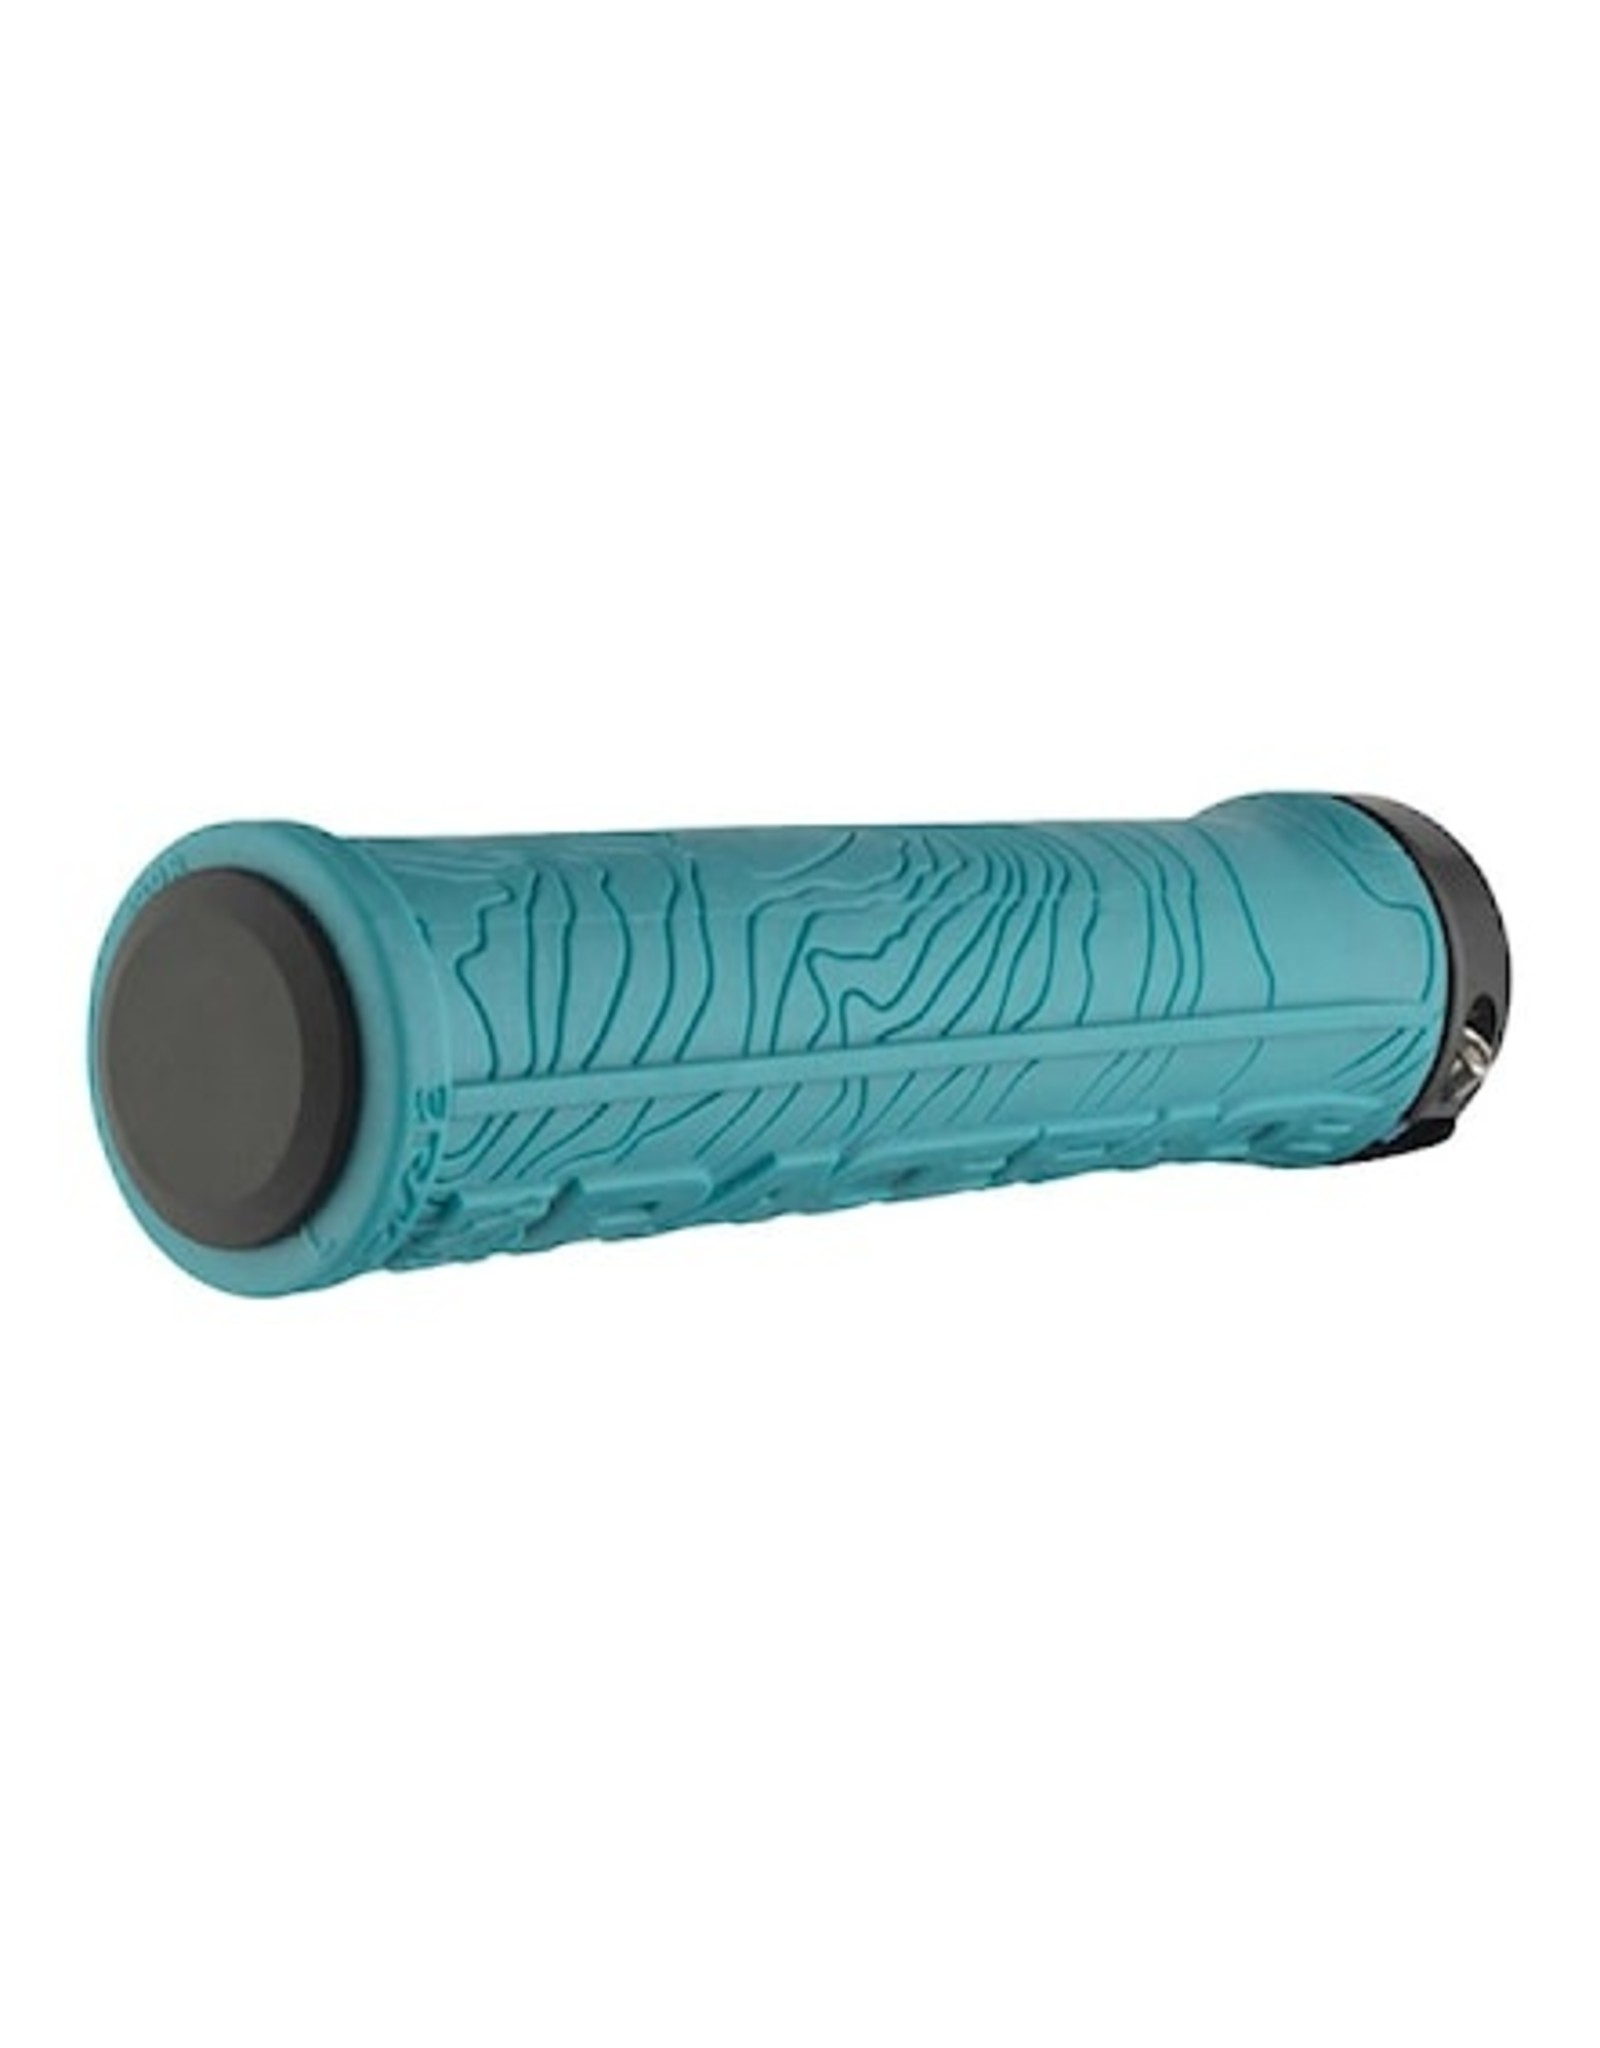 RaceFace RaceFace Half Nelson Grips - Turquoise, Lock-On